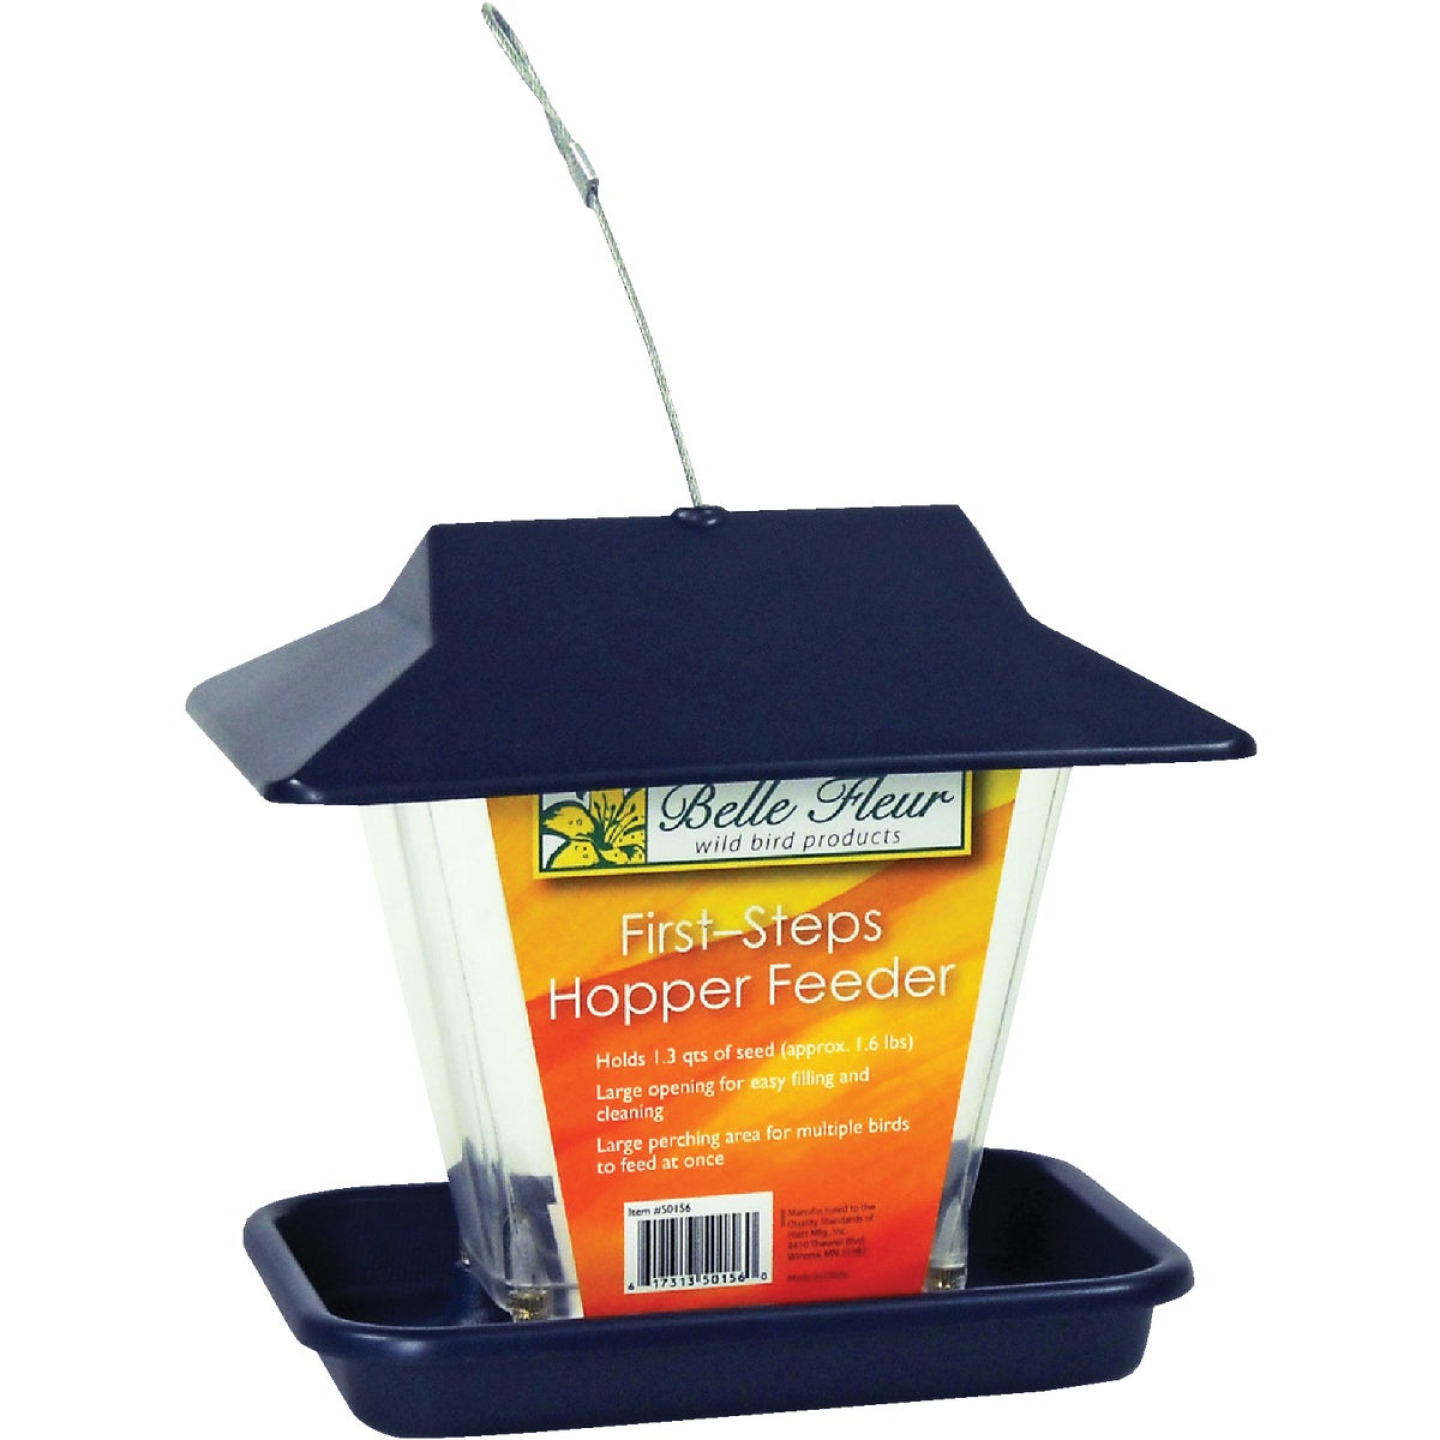 Stokes Select Belle Fleur Blue Plastic Hopper Bird Feeder Image 1